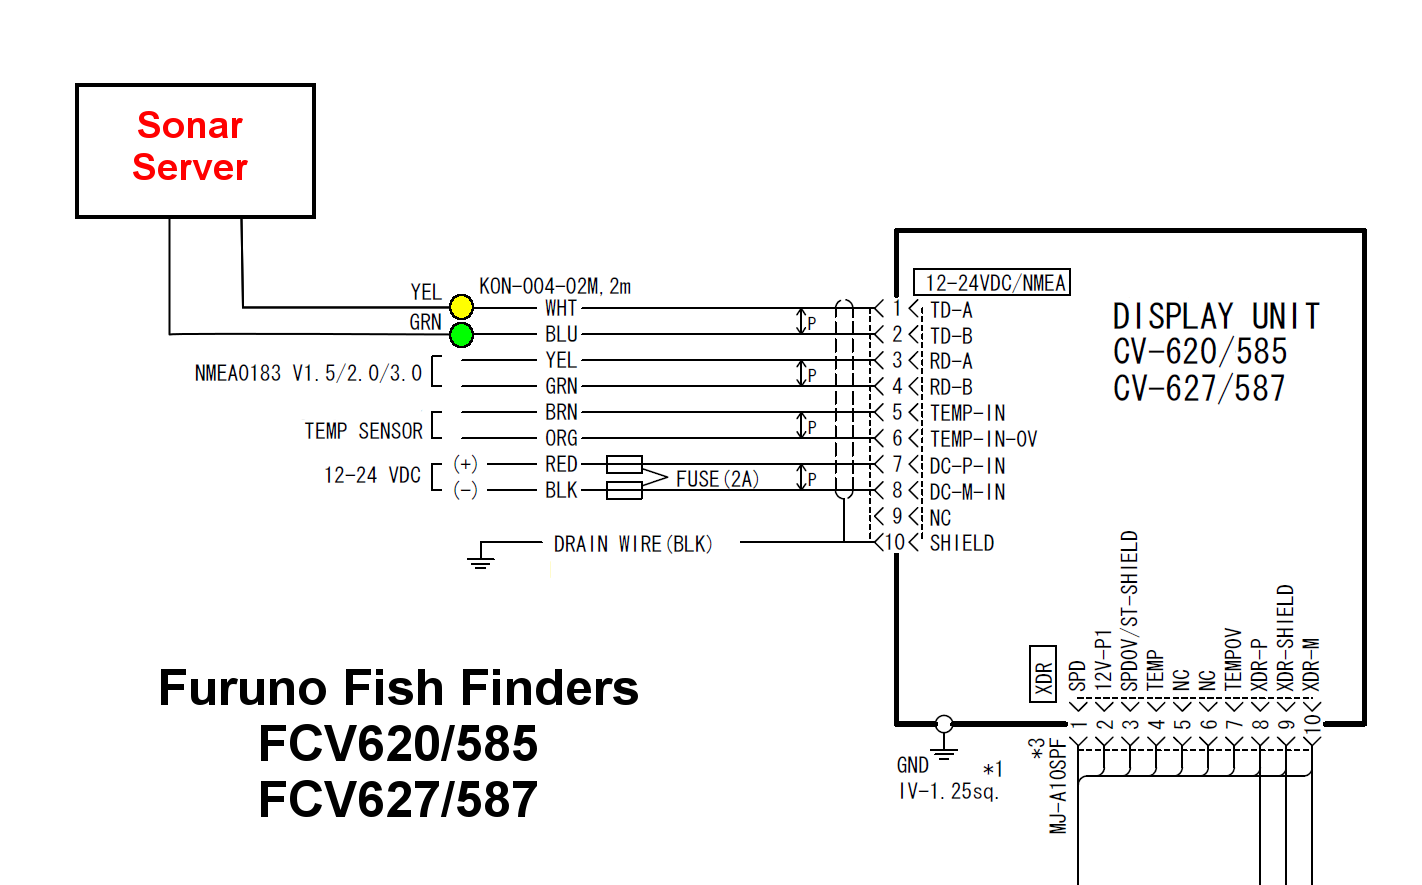 Lowrance Wiring Diagrams besides New simrad autopilots 100 nmea 2000 almost further Transducer Wiring Diagram in addition Furuno together with Raymarine Rudder Position Sensor Wiring Diagram Wiring Diagrams. on furuno wiring diagram